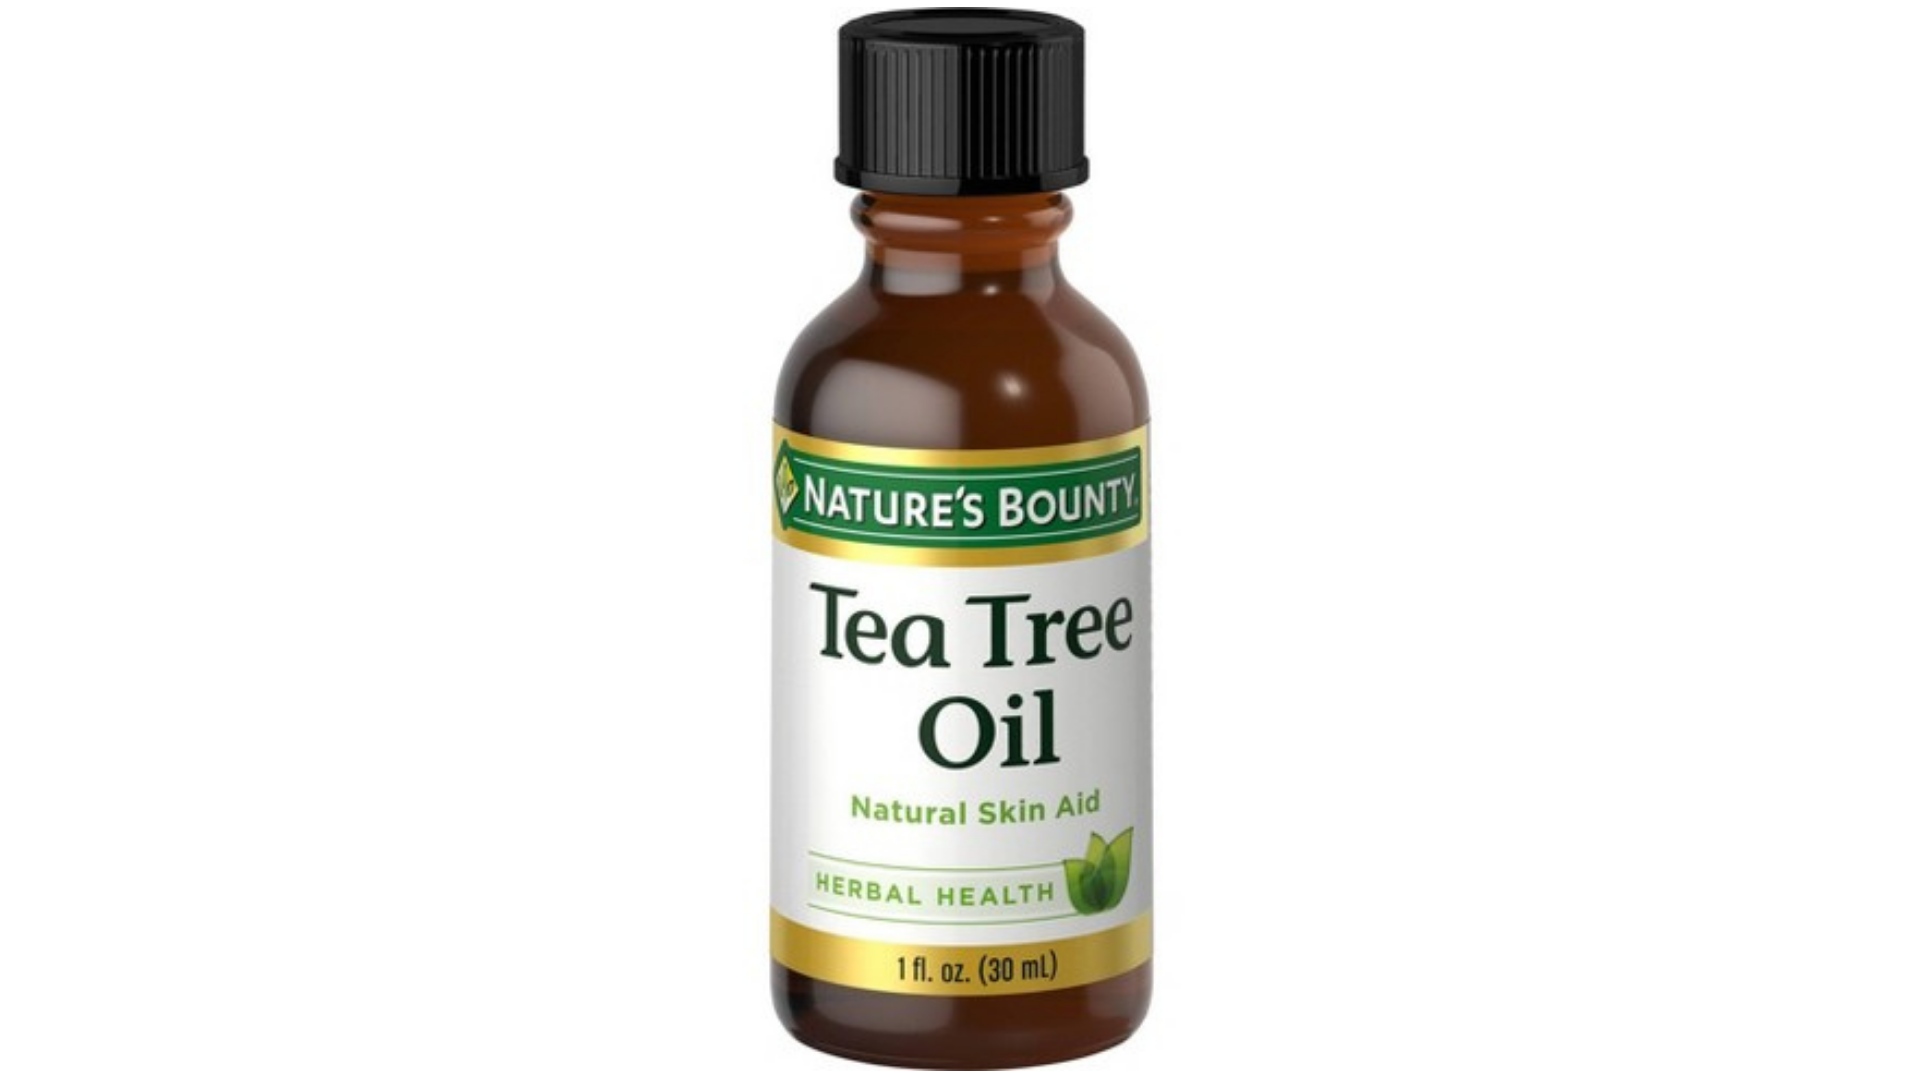 What is Tea Tree Oil good for?